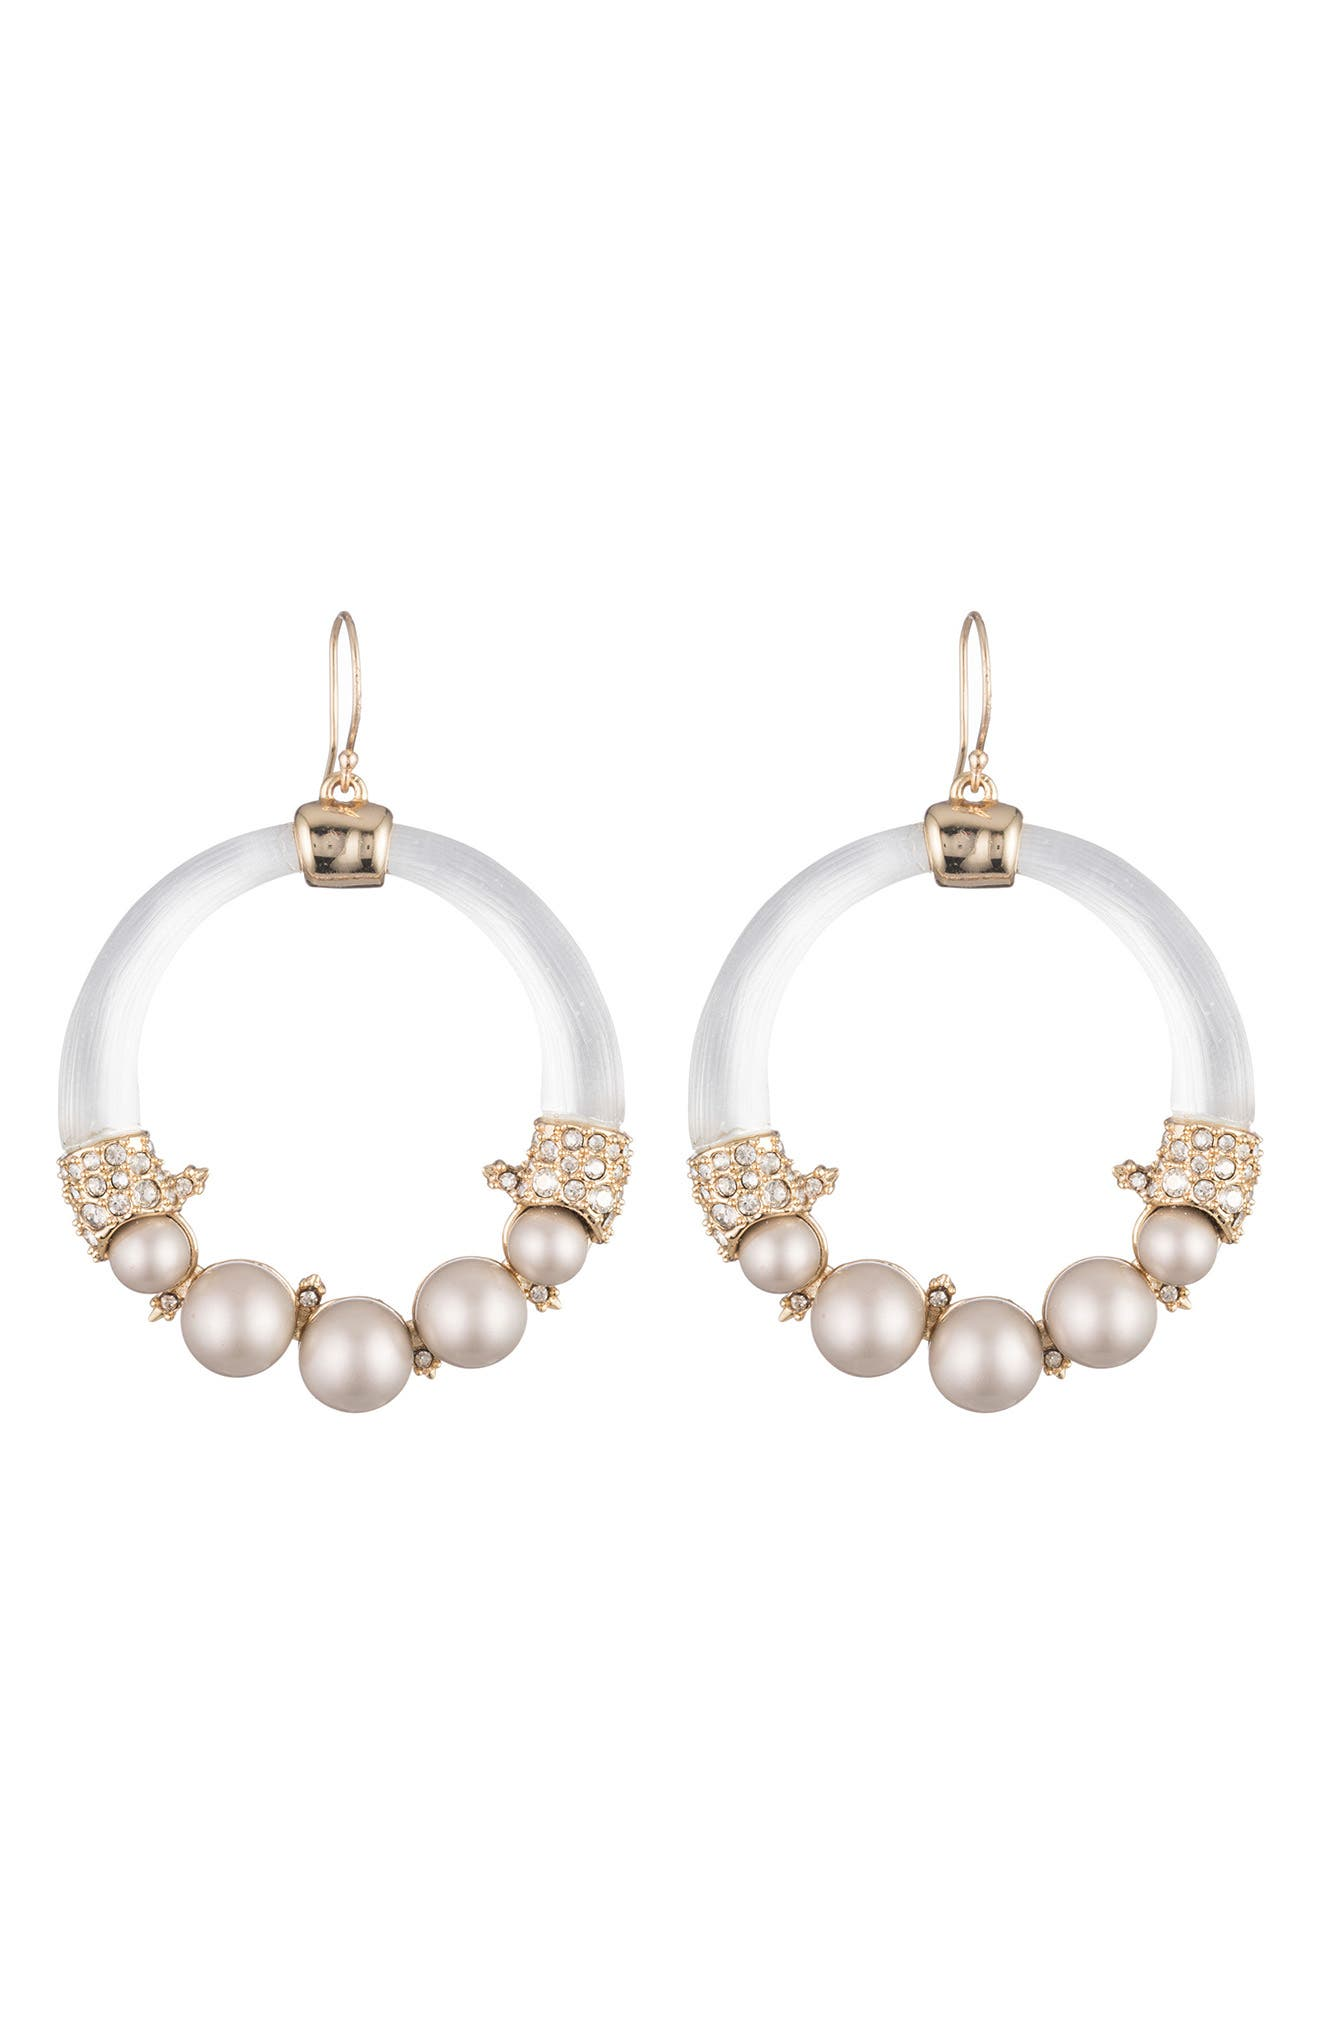 Shell Pearl Hoop Earrings,                             Main thumbnail 1, color,                             040